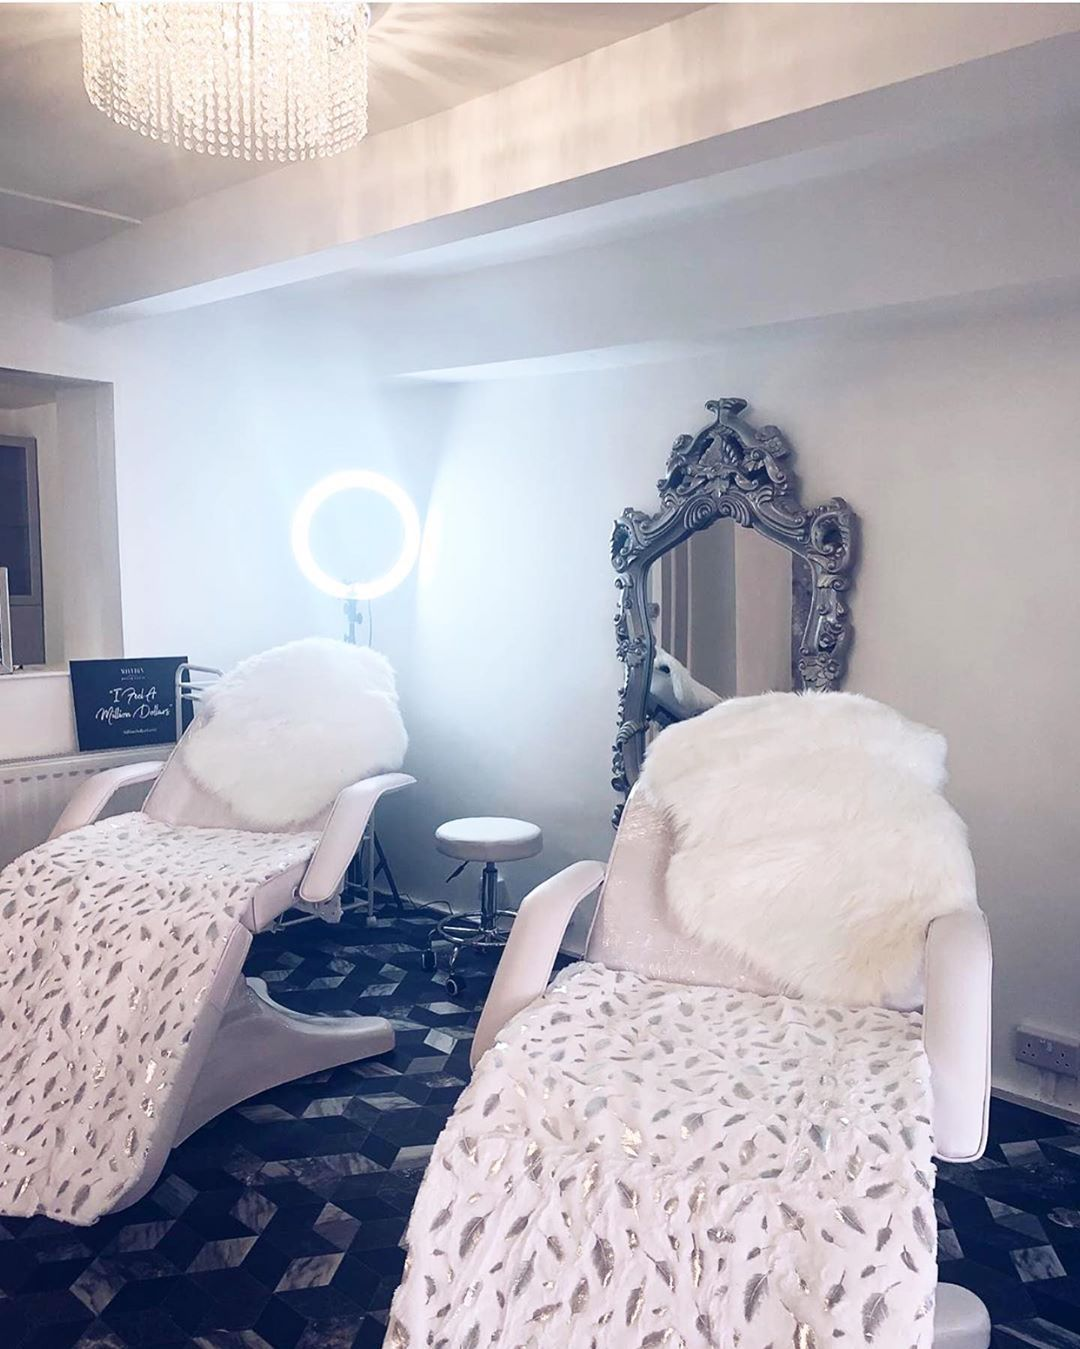 It's all about a little glam, very simple Room but The key here is the Glam Vintage mirror and glam set up on the beds, with an elegant chandelier , all these 3 elements make the impact in this room ????  LASH ROOM DECOR CREDIT : @thebeautyinvestor . . . . . . . . . . . . . . . . #lashes #lashhdecor #lashstudio #lashes  #bellalash #lashroom #lashinspo  #walldecor #decor #lashgoals #lashqueen #lashartist #lashtech #lashboss #lashextentions #salondecor #decor #lashsetup #lashroom #lashroomdecor #lashroomdecor